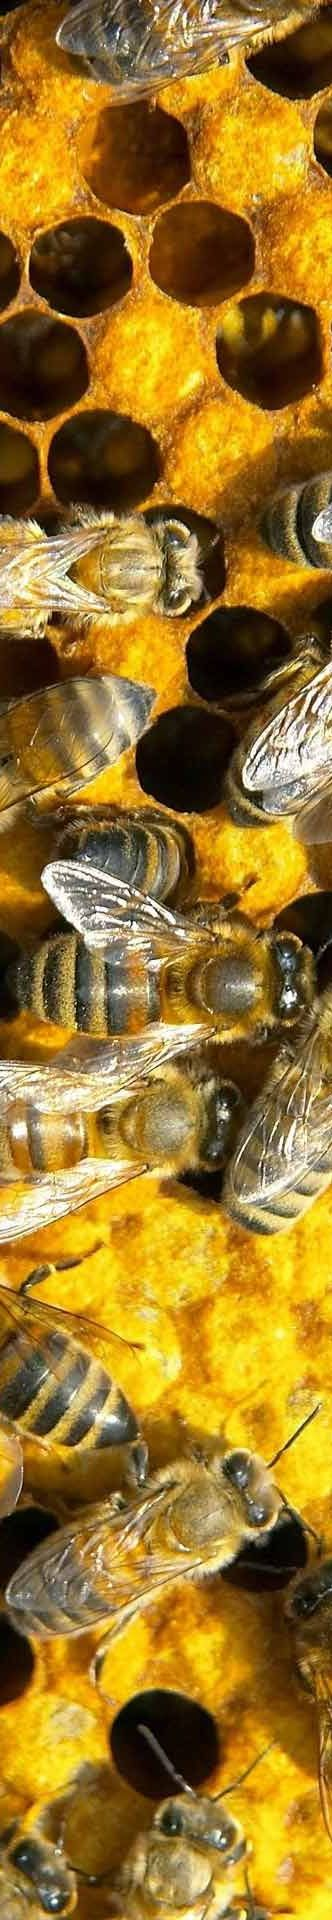 best bee loved images on pinterest bees honey bees and bee happy 9